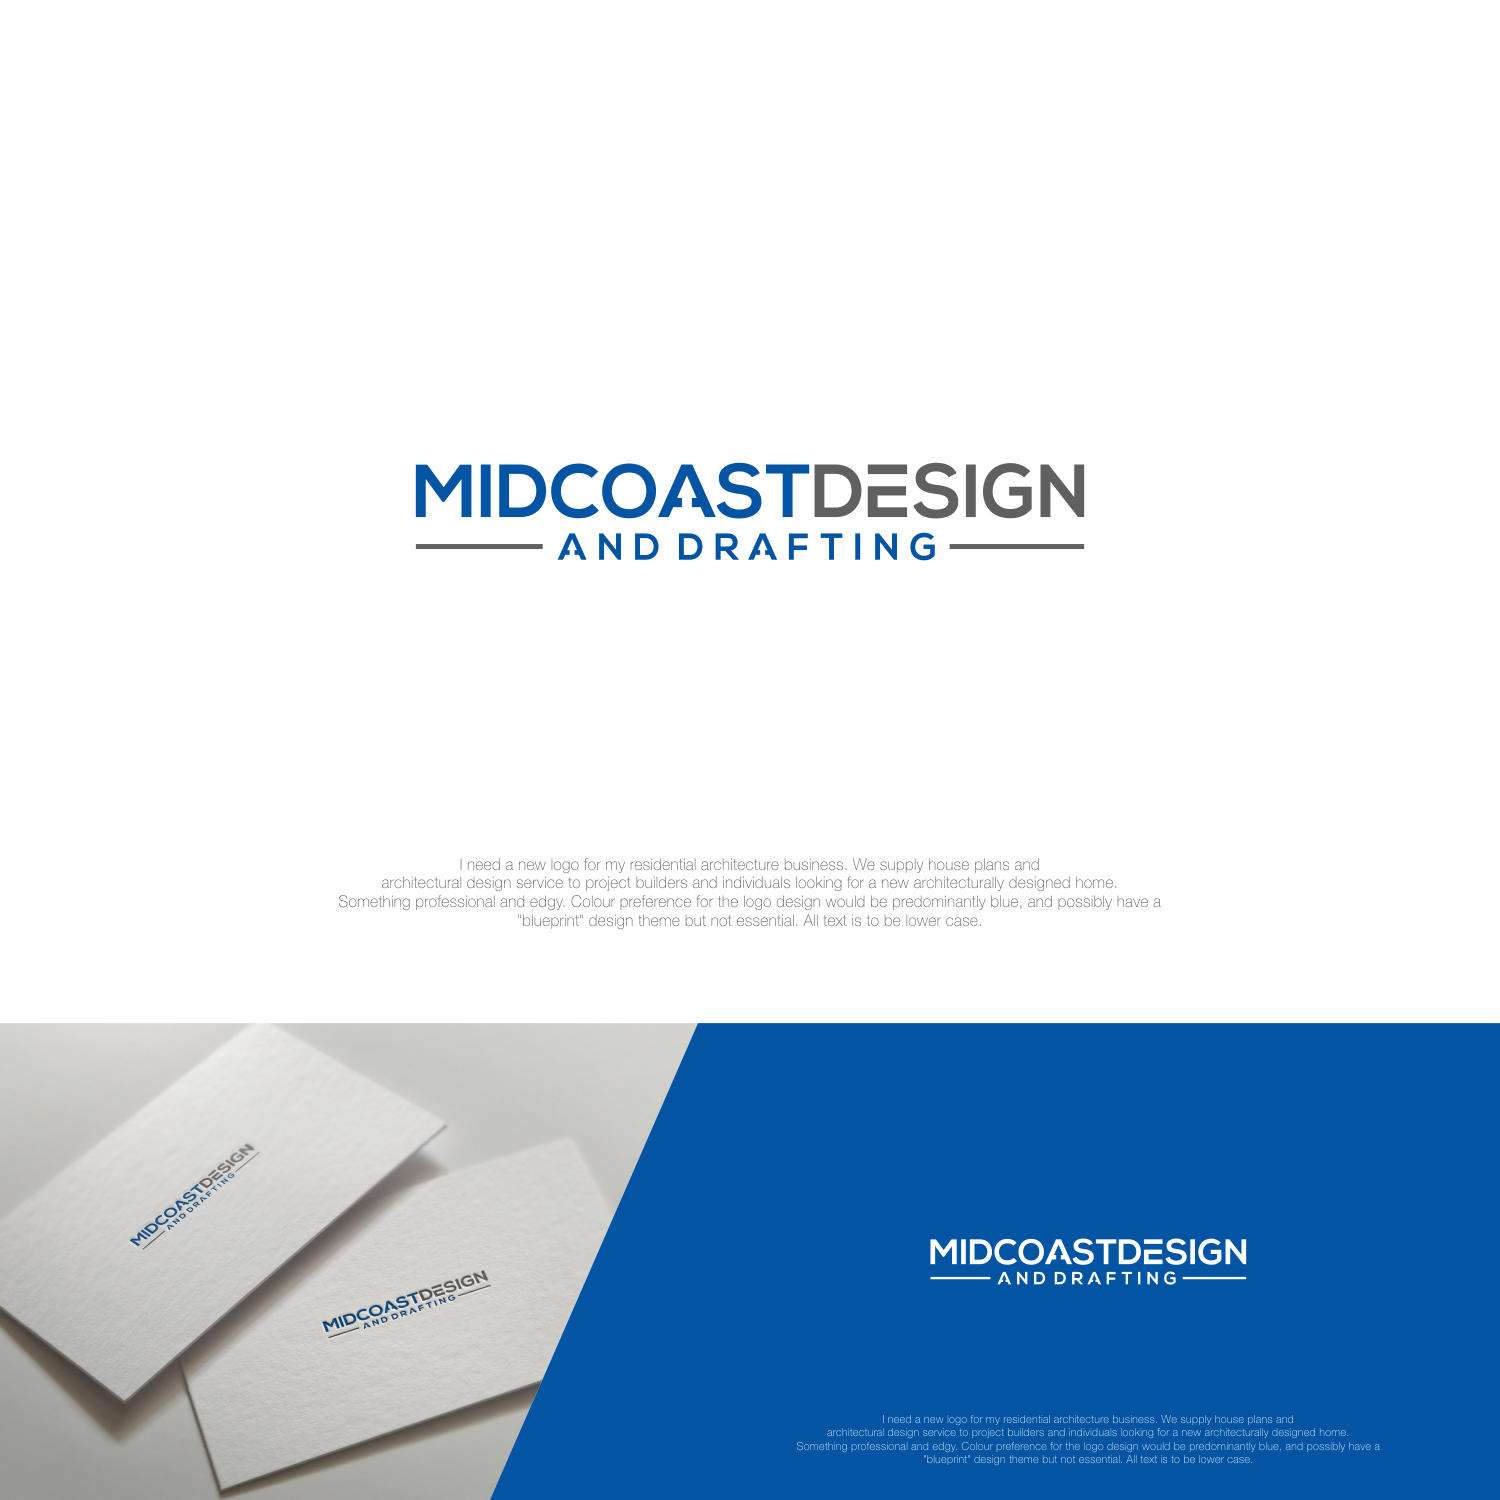 Modern professional logo design for midcoast design drafting by logo design by jenggotmerah for modern edgy logo for architectural design business design 13789426 malvernweather